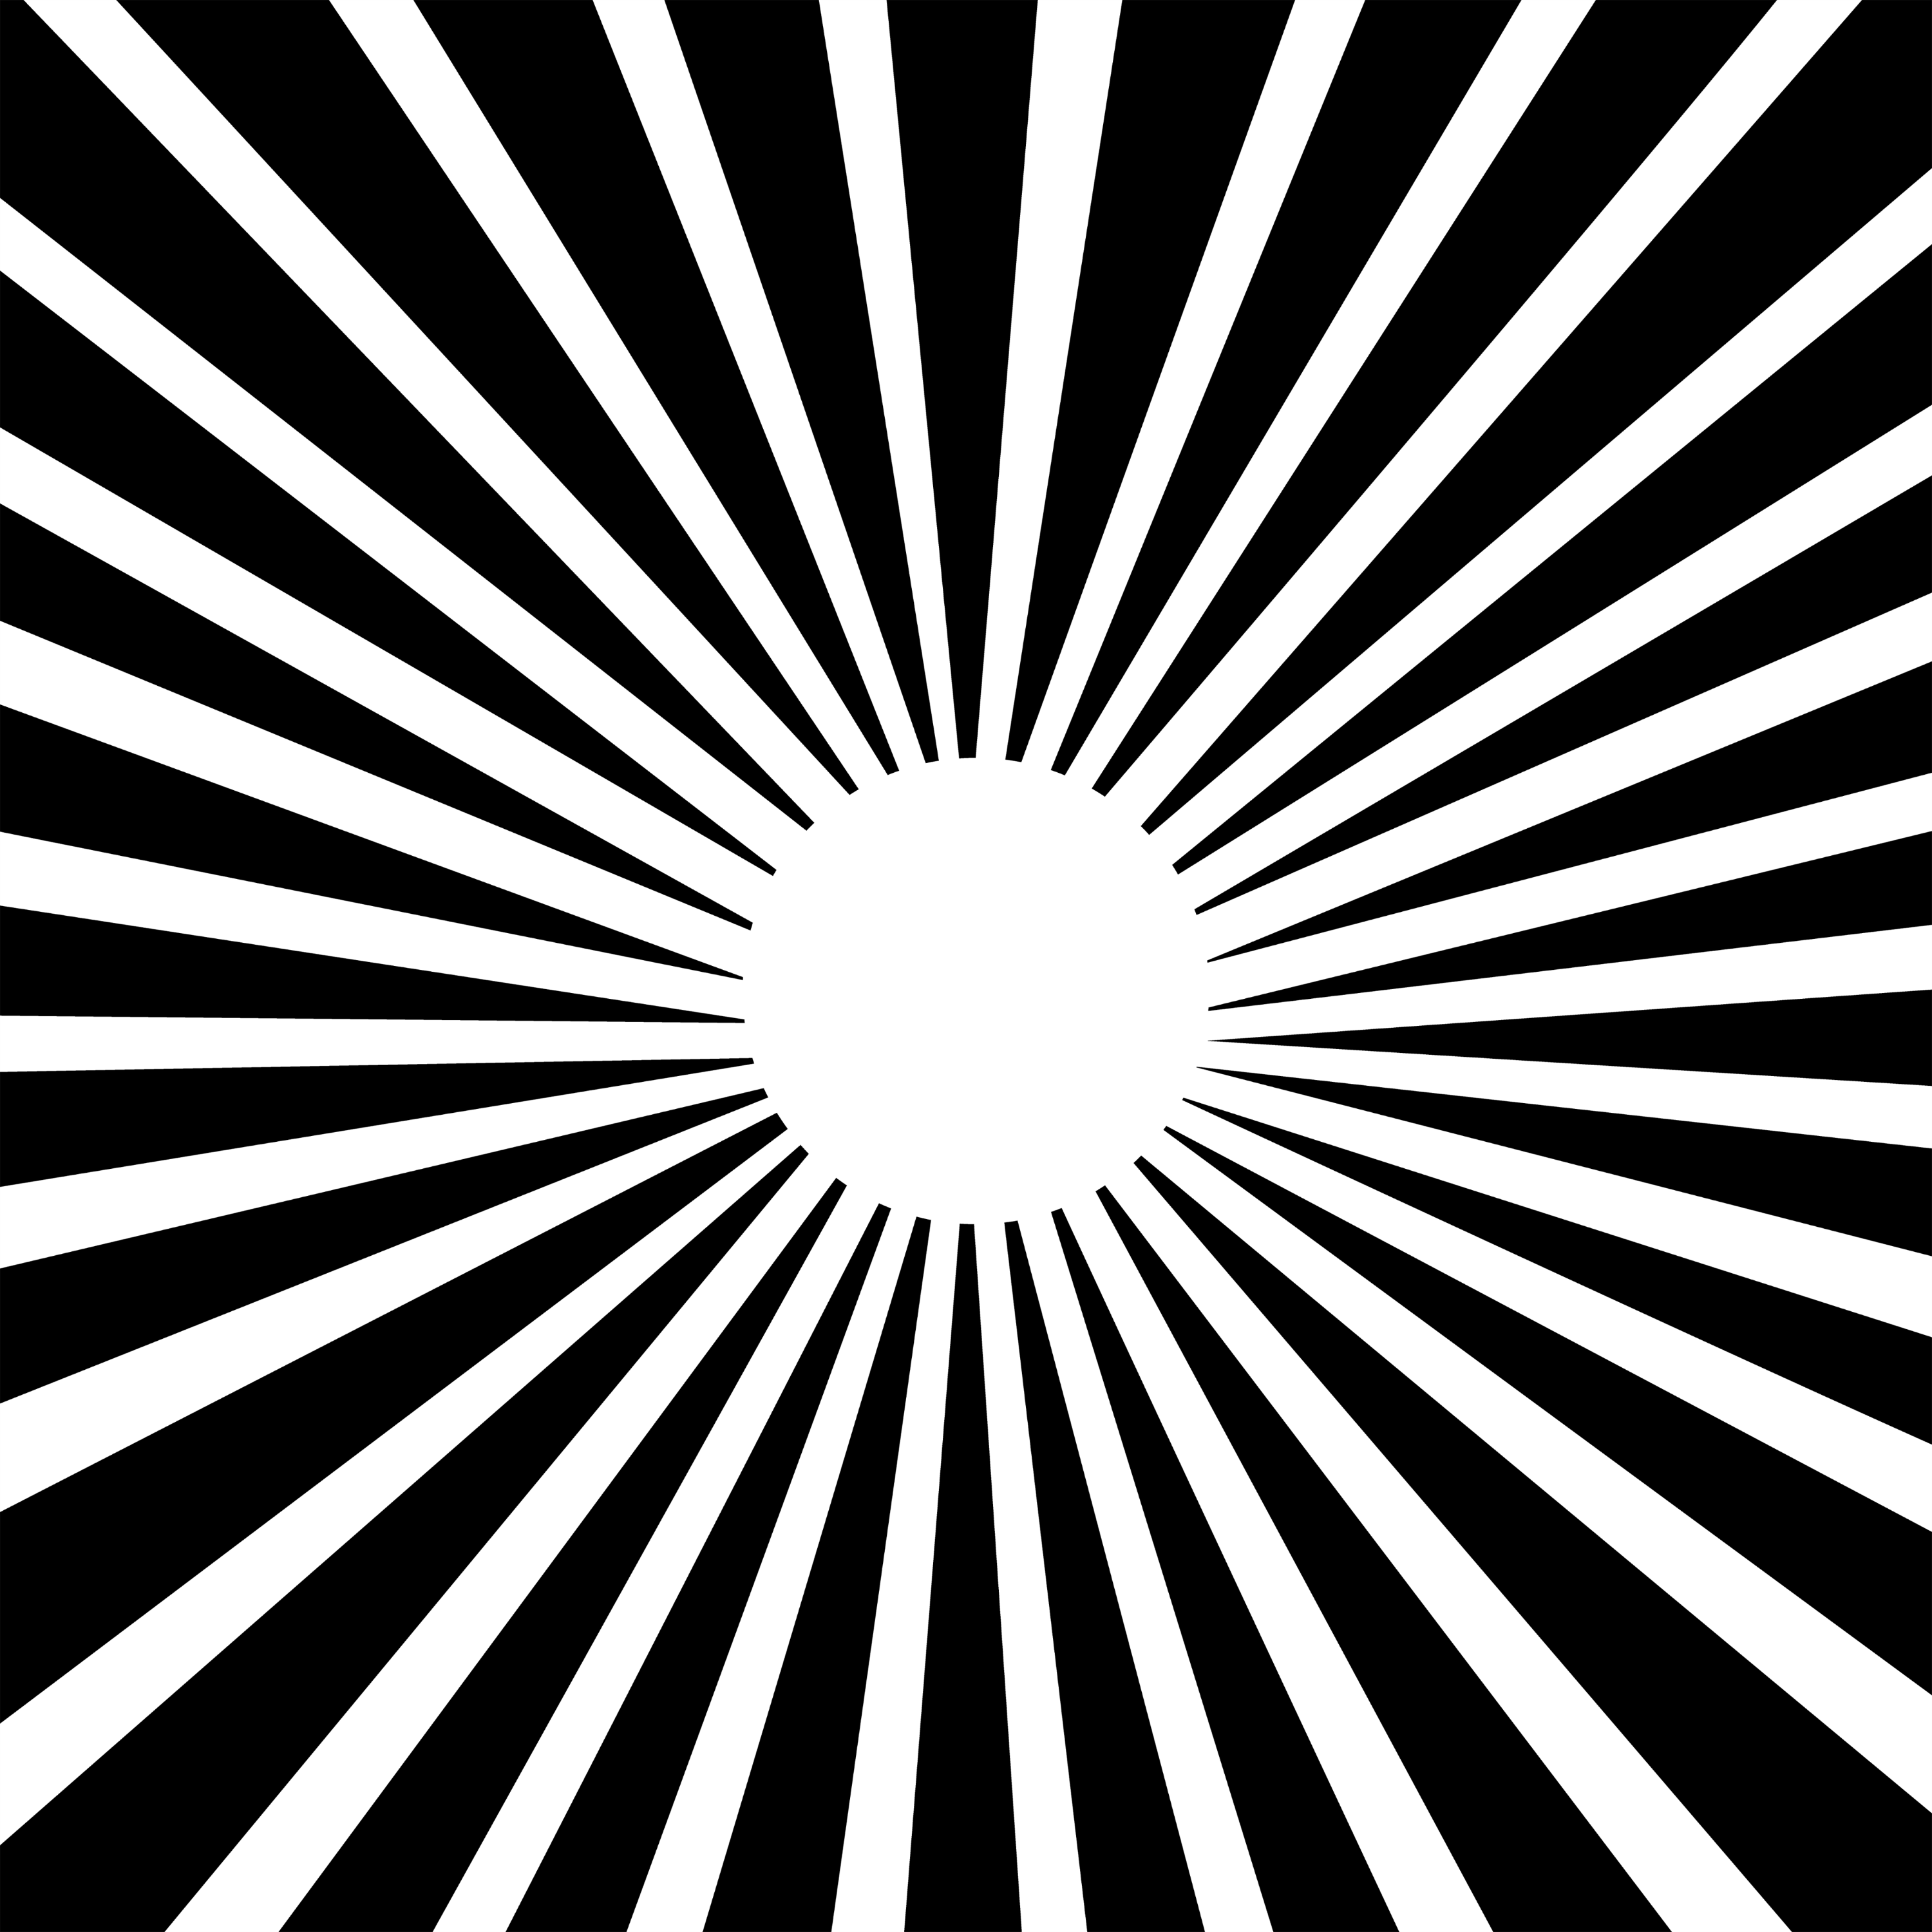 Black And White Line Designs : Unique black and white patterns themescompany